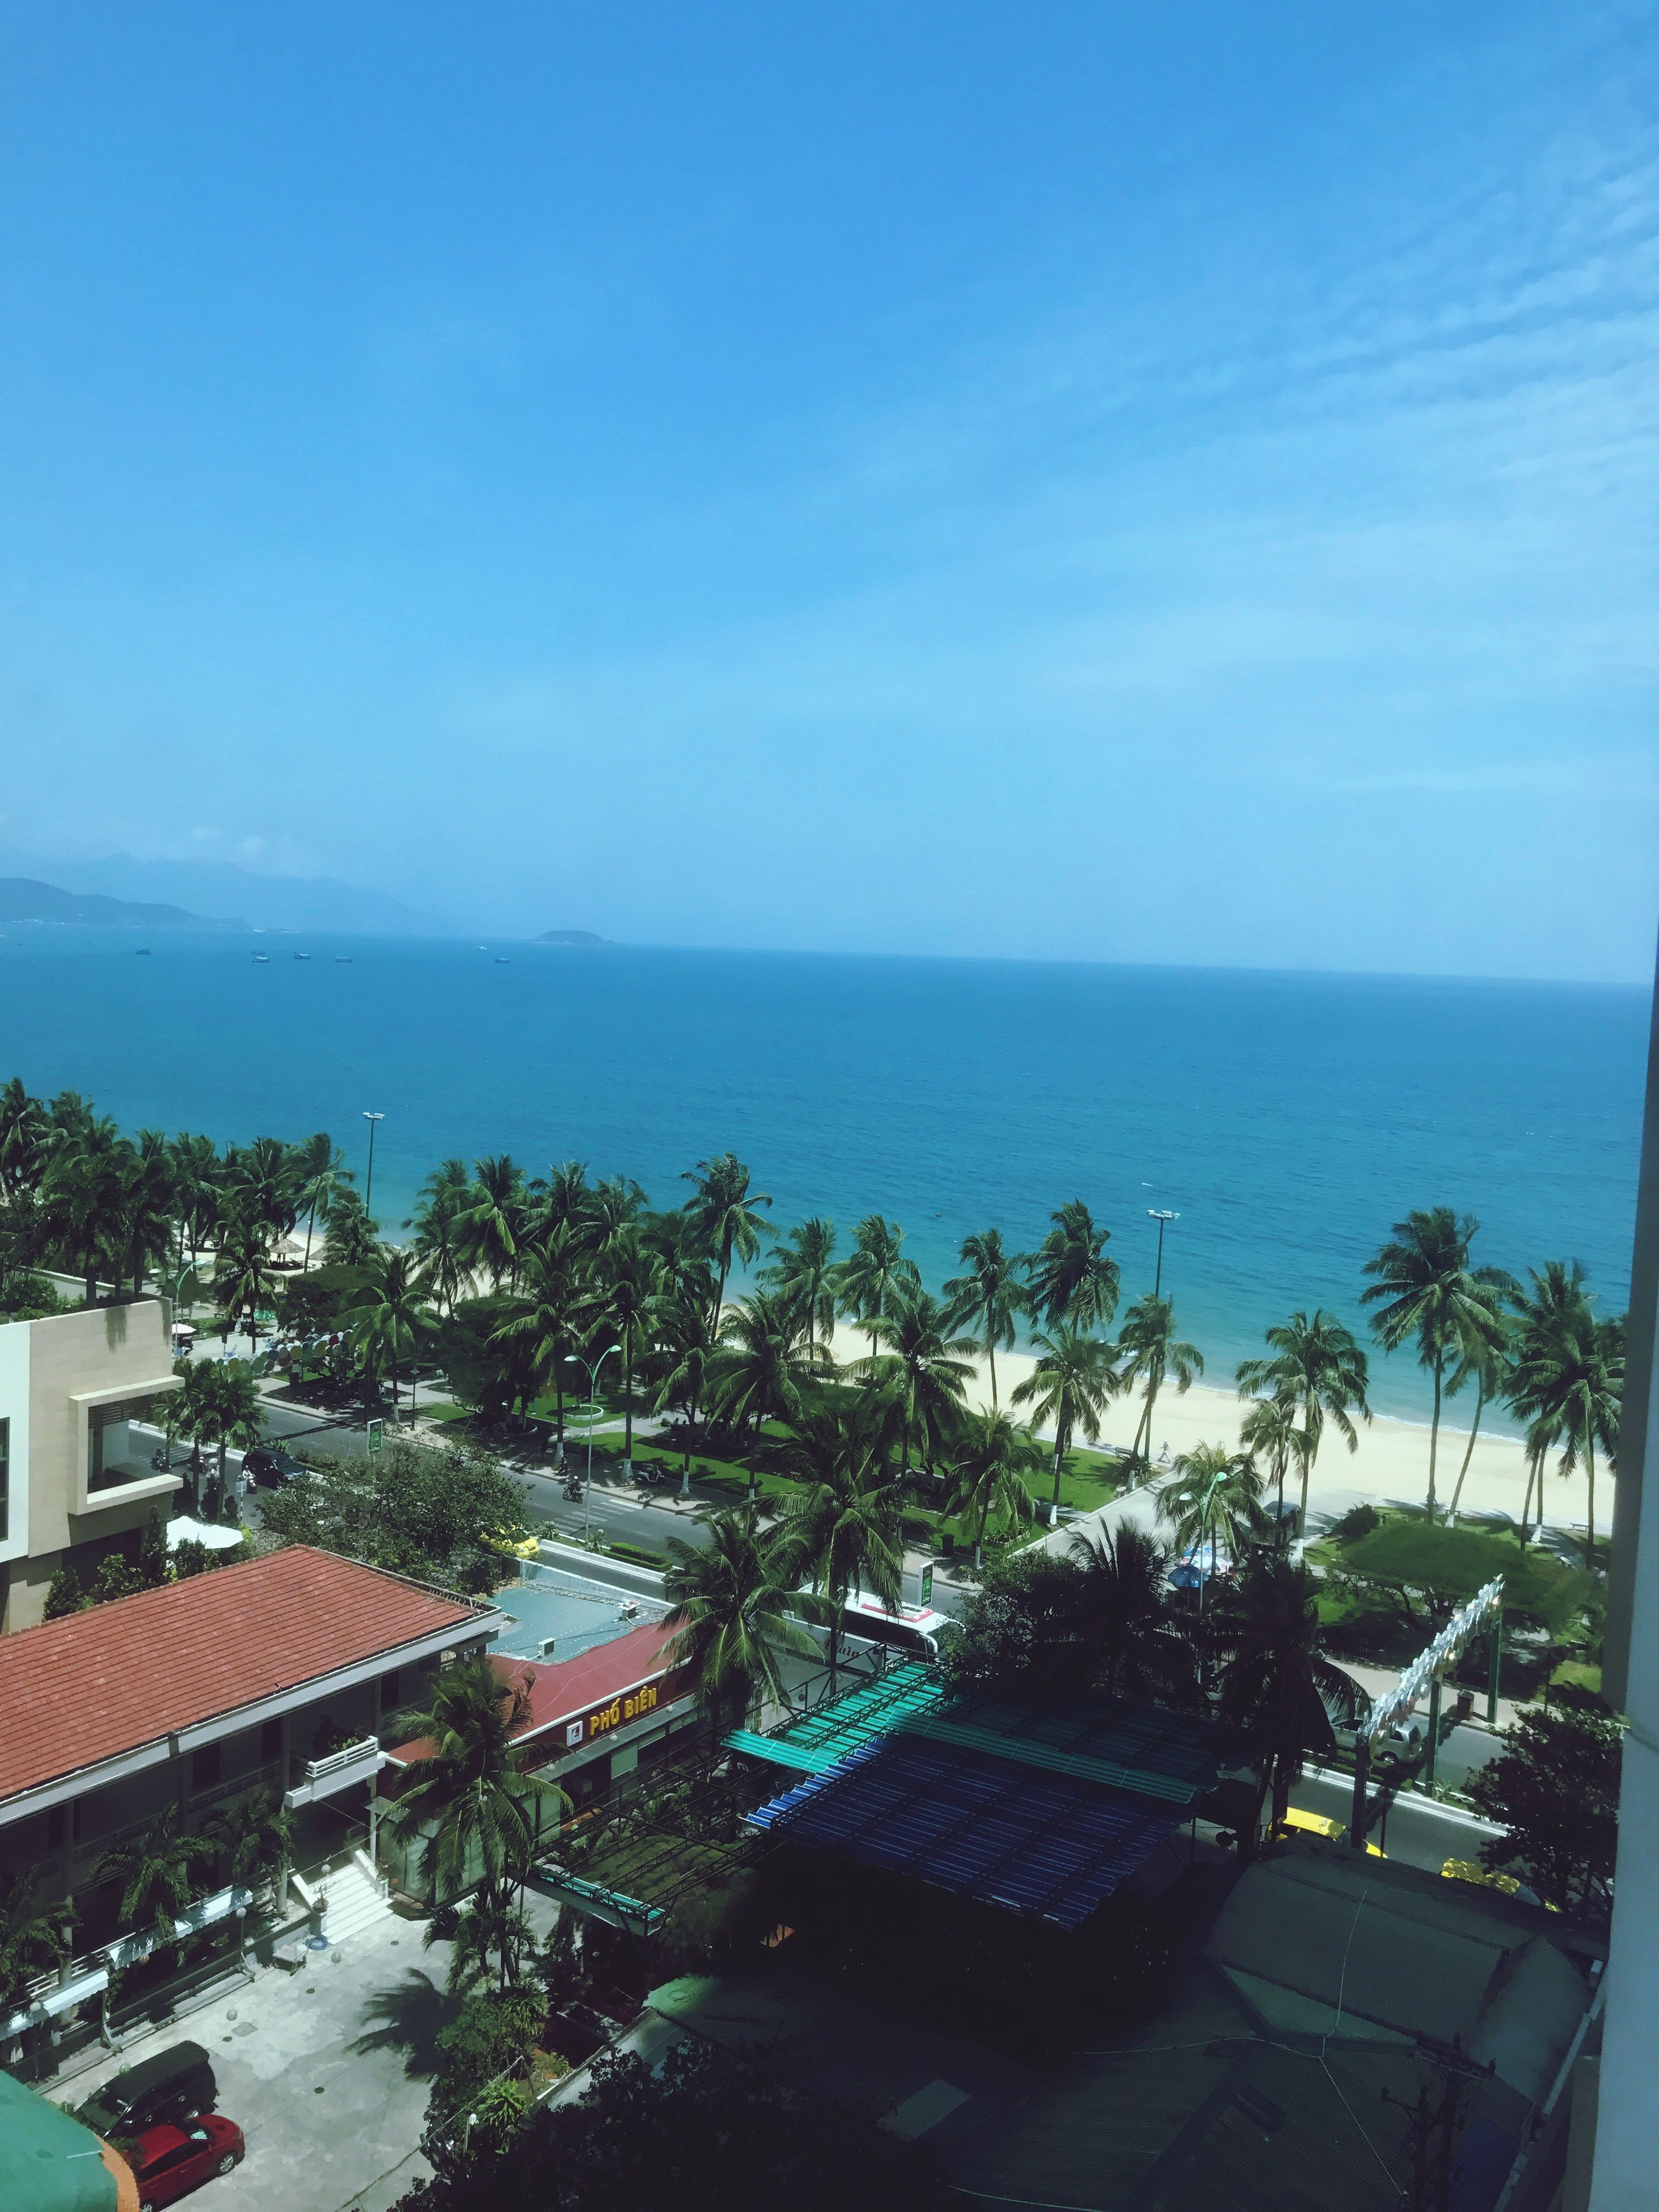 sea, high angle view, horizon over water, water, sky, tree, blue, scenics, palm tree, nature, swimming pool, beach, sunlight, beauty in nature, growth, tranquility, outdoors, day, no people, architecture